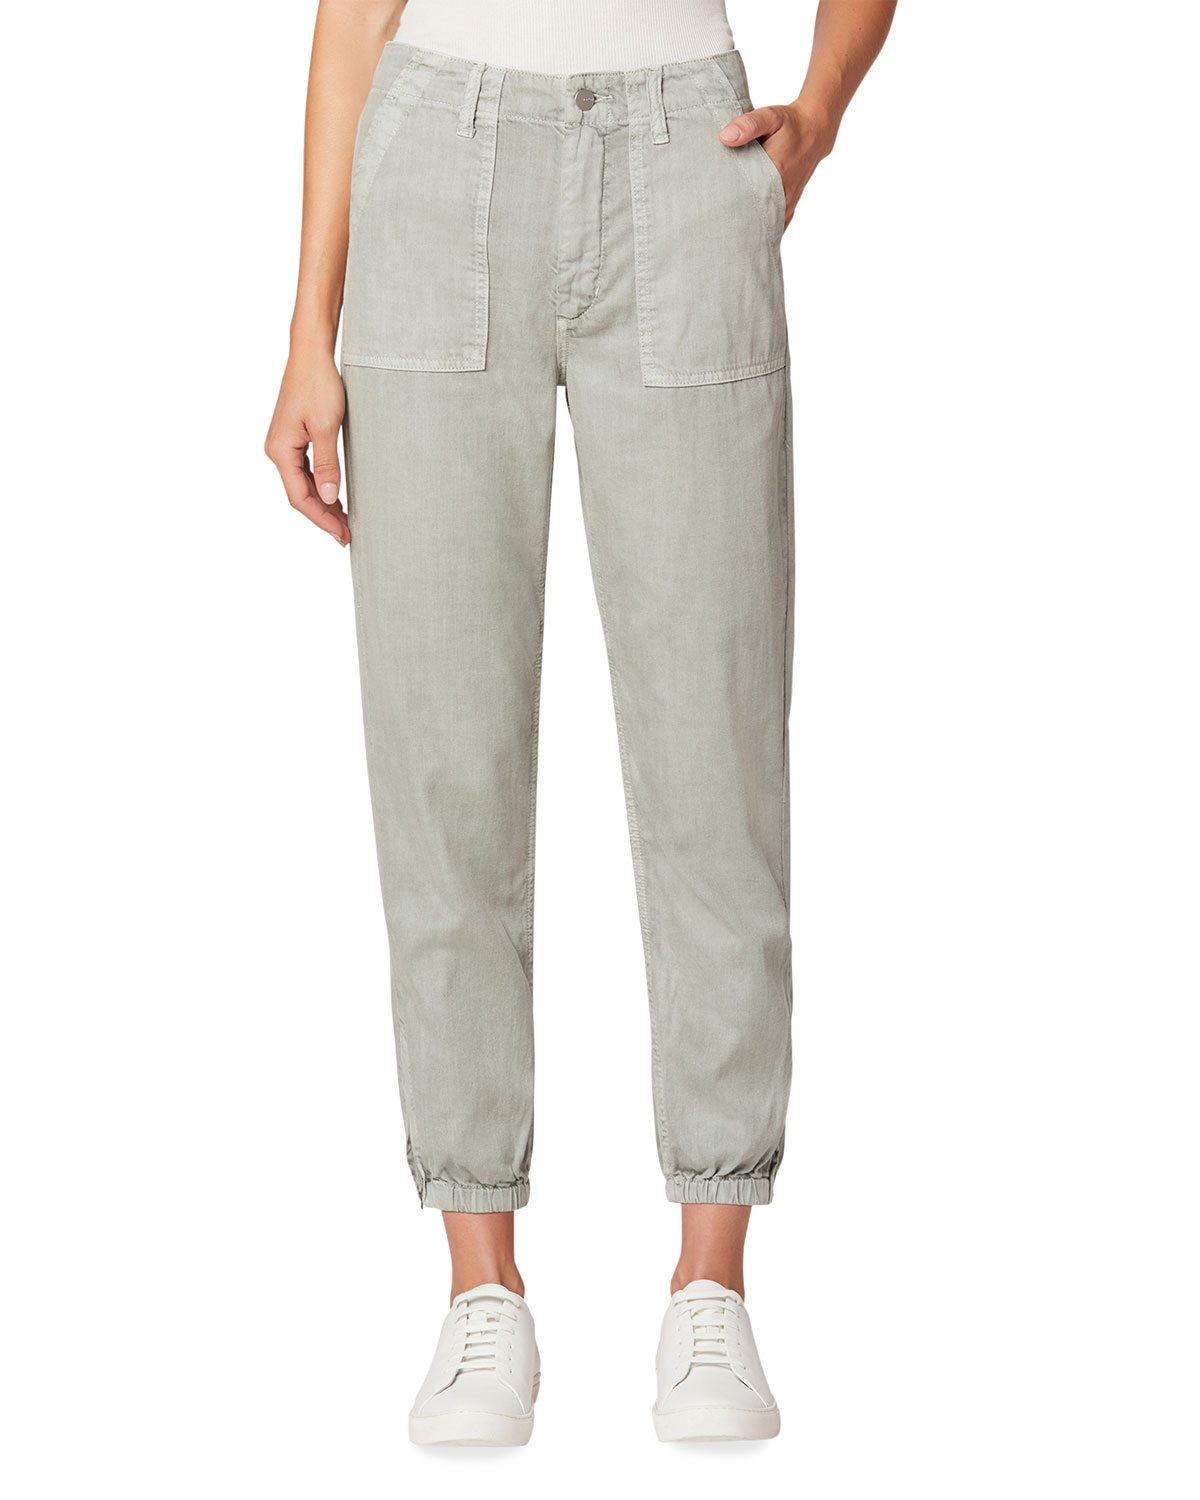 The Workwear Jogger Pants